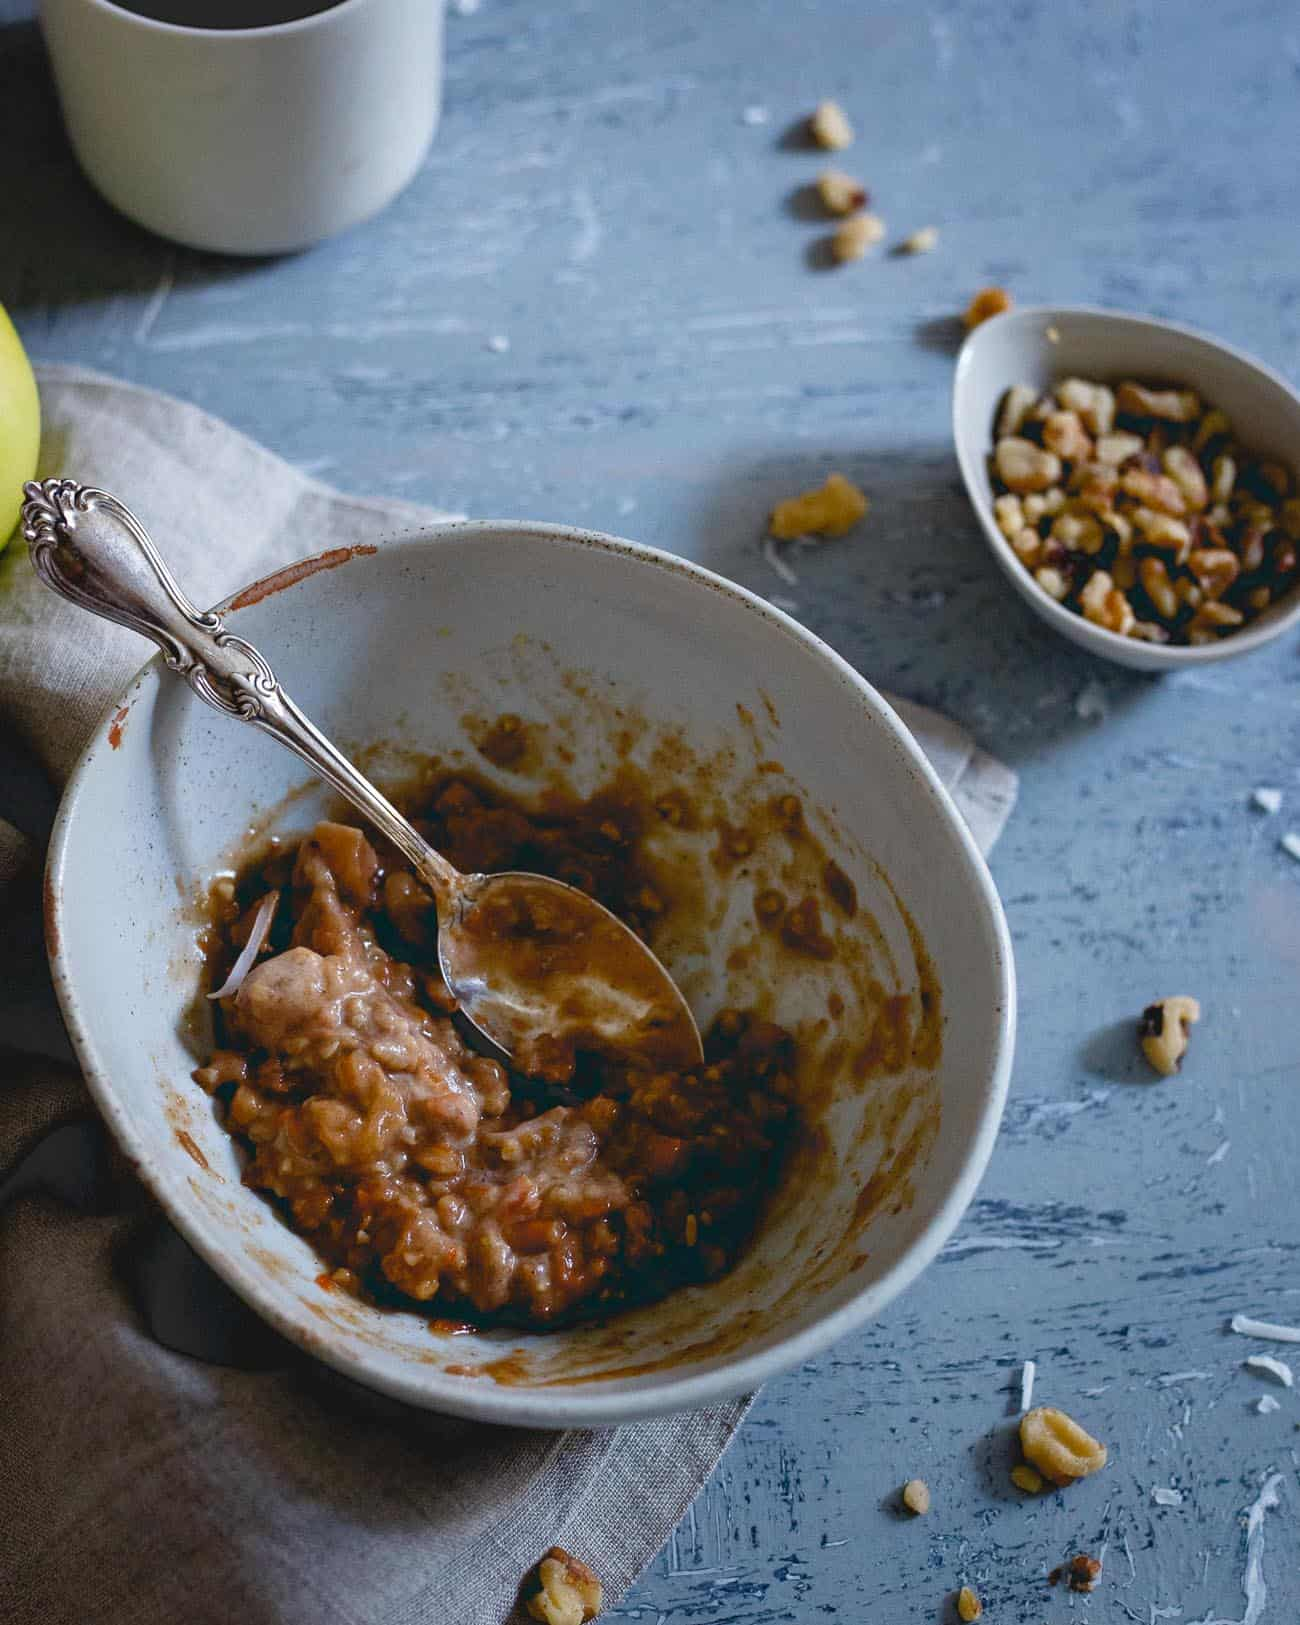 Cozy, warm and comforting, this carrot cake oatmeal with apples and apple butter is the perfect way to start your fall day.